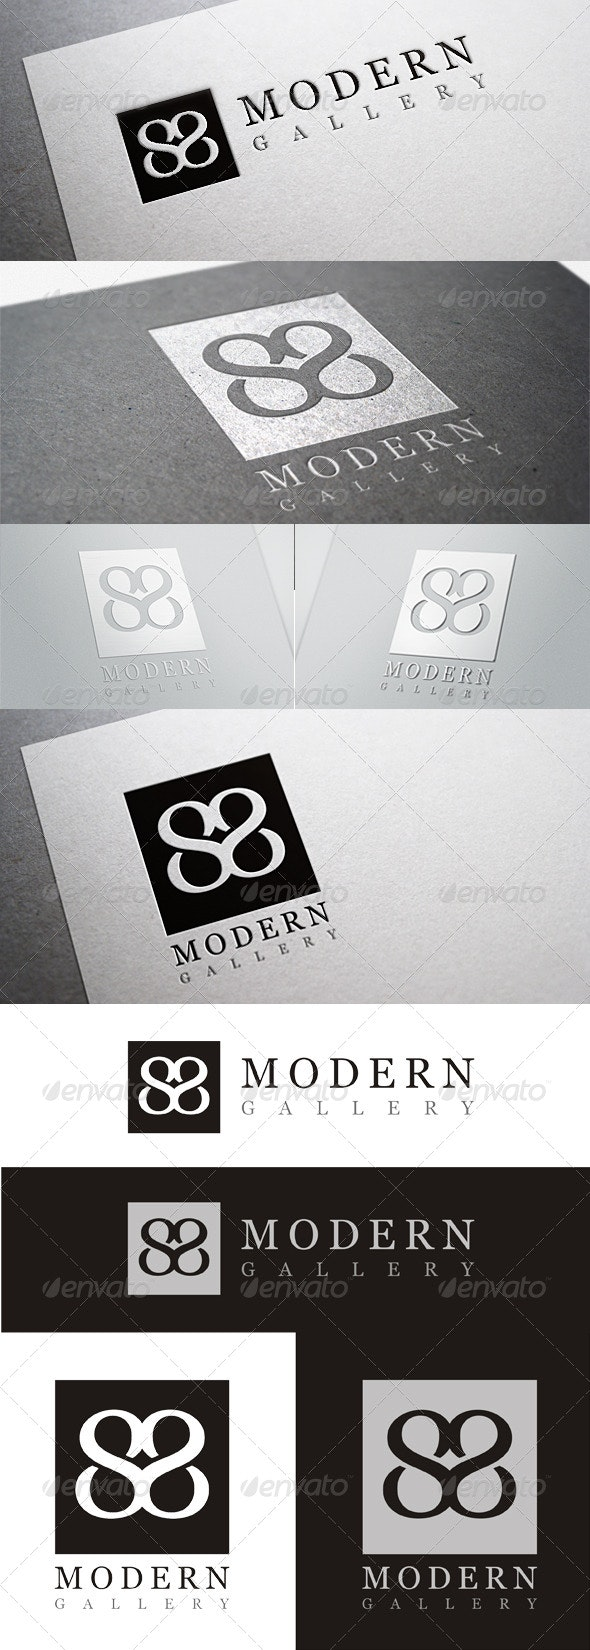 Modern Gallery 1 - Vector Abstract